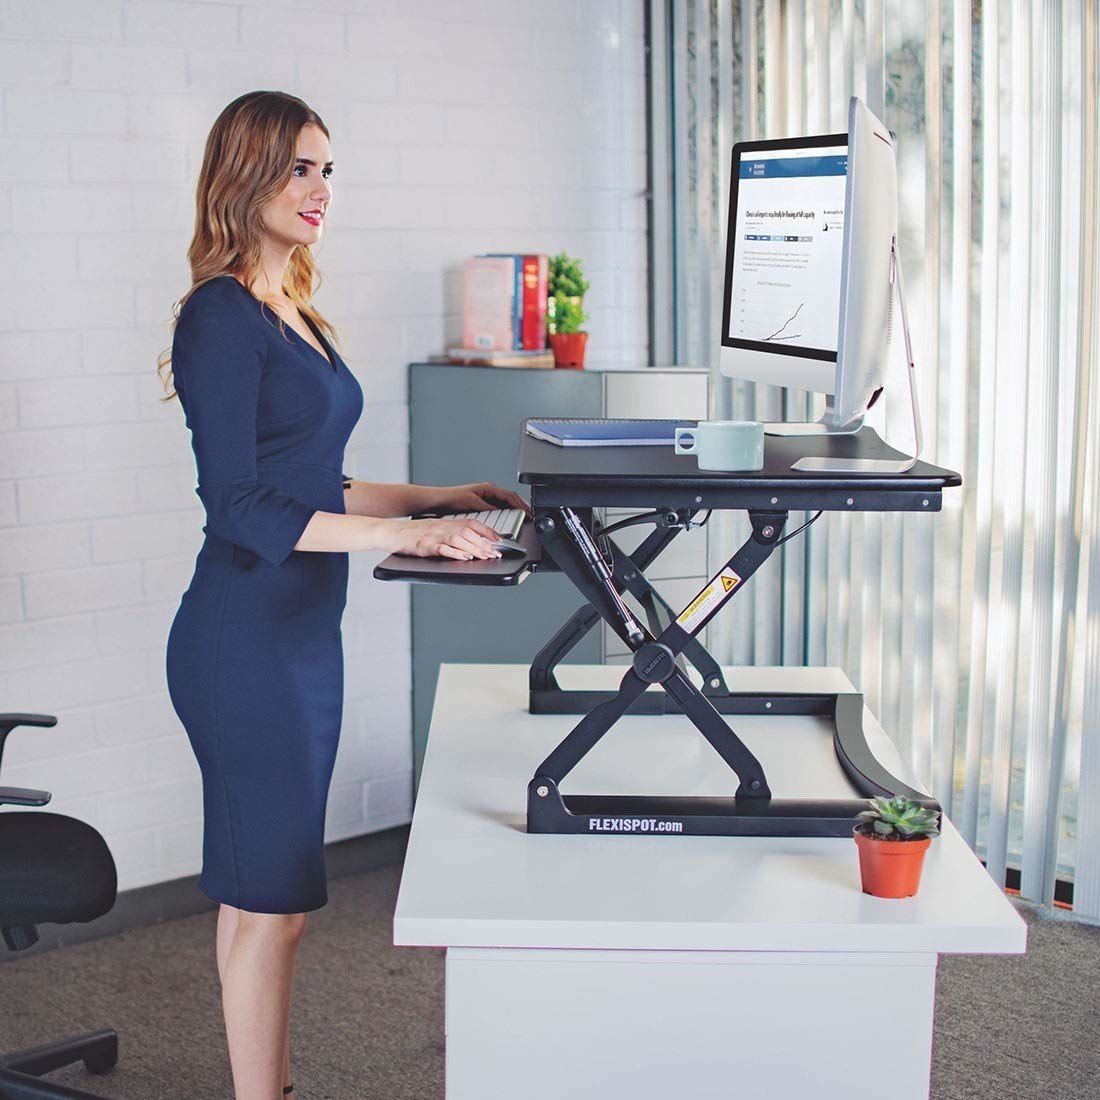 Model using the standing desk on top of an actually desk, which is supporting two desktop computers